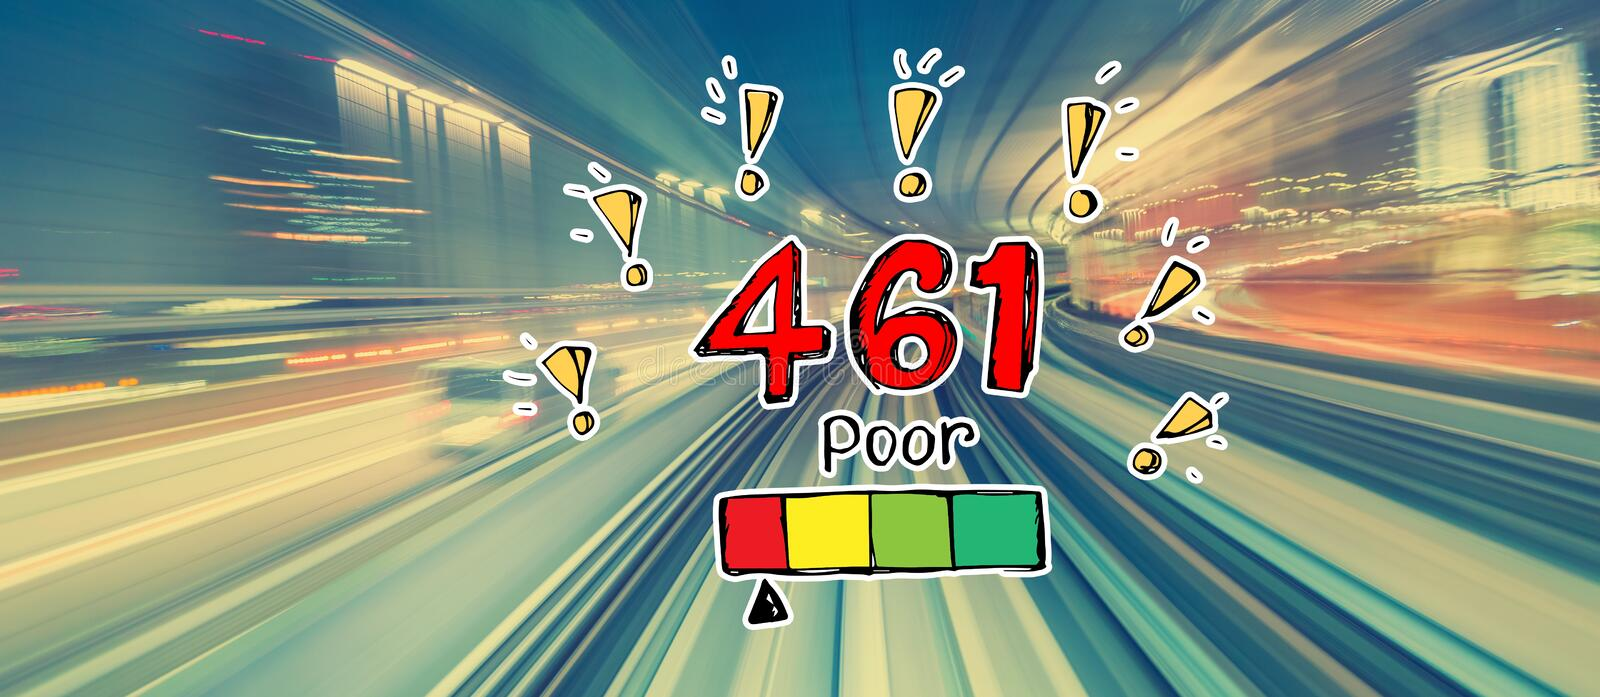 Poor credit score theme with high speed motion blur. Poor credit score theme with abstract high speed technology POV motion blur stock illustration